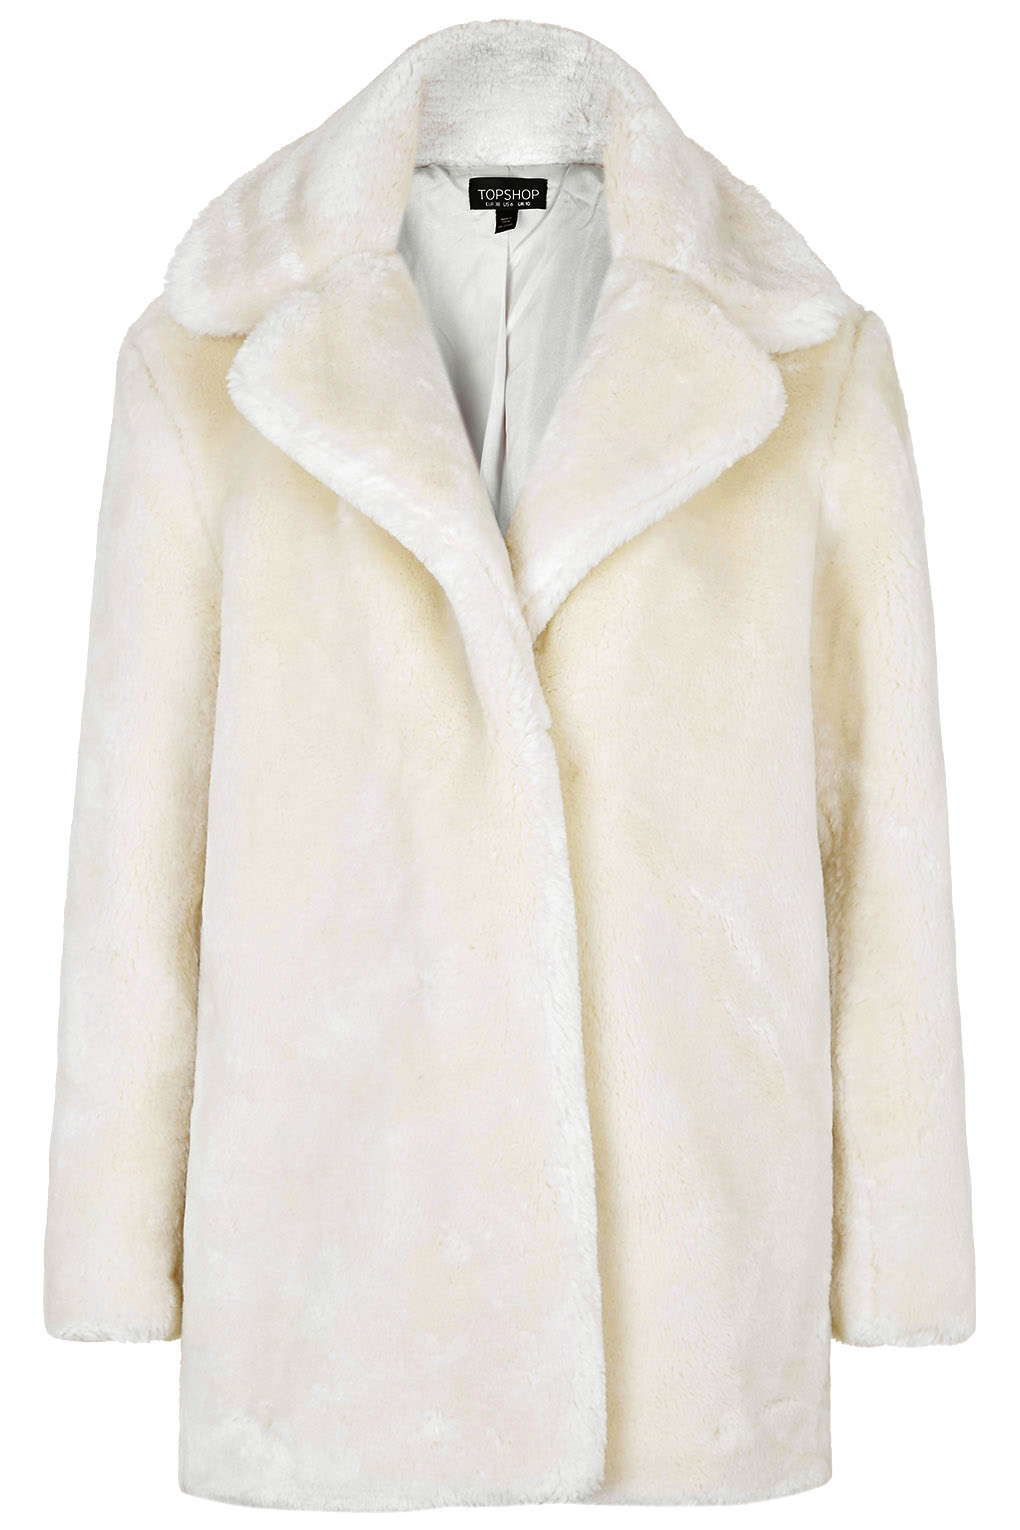 9c4a8be46f7 See what I'm loving on Topshop for iOS | Deri | Fur, White fur coat ...